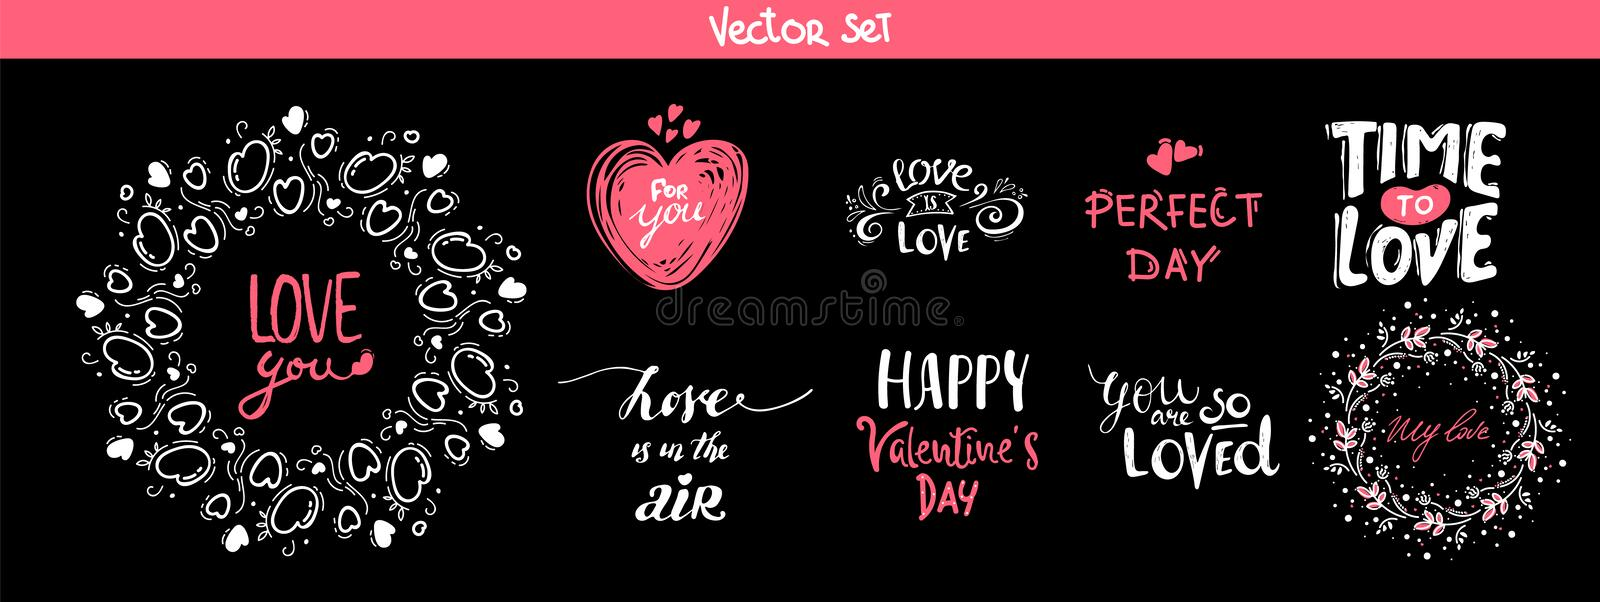 Set of decoration lettering elements for valentine day, vector illustration. Hand drawn February 14 labels or posters collection. Love lettering background royalty free illustration